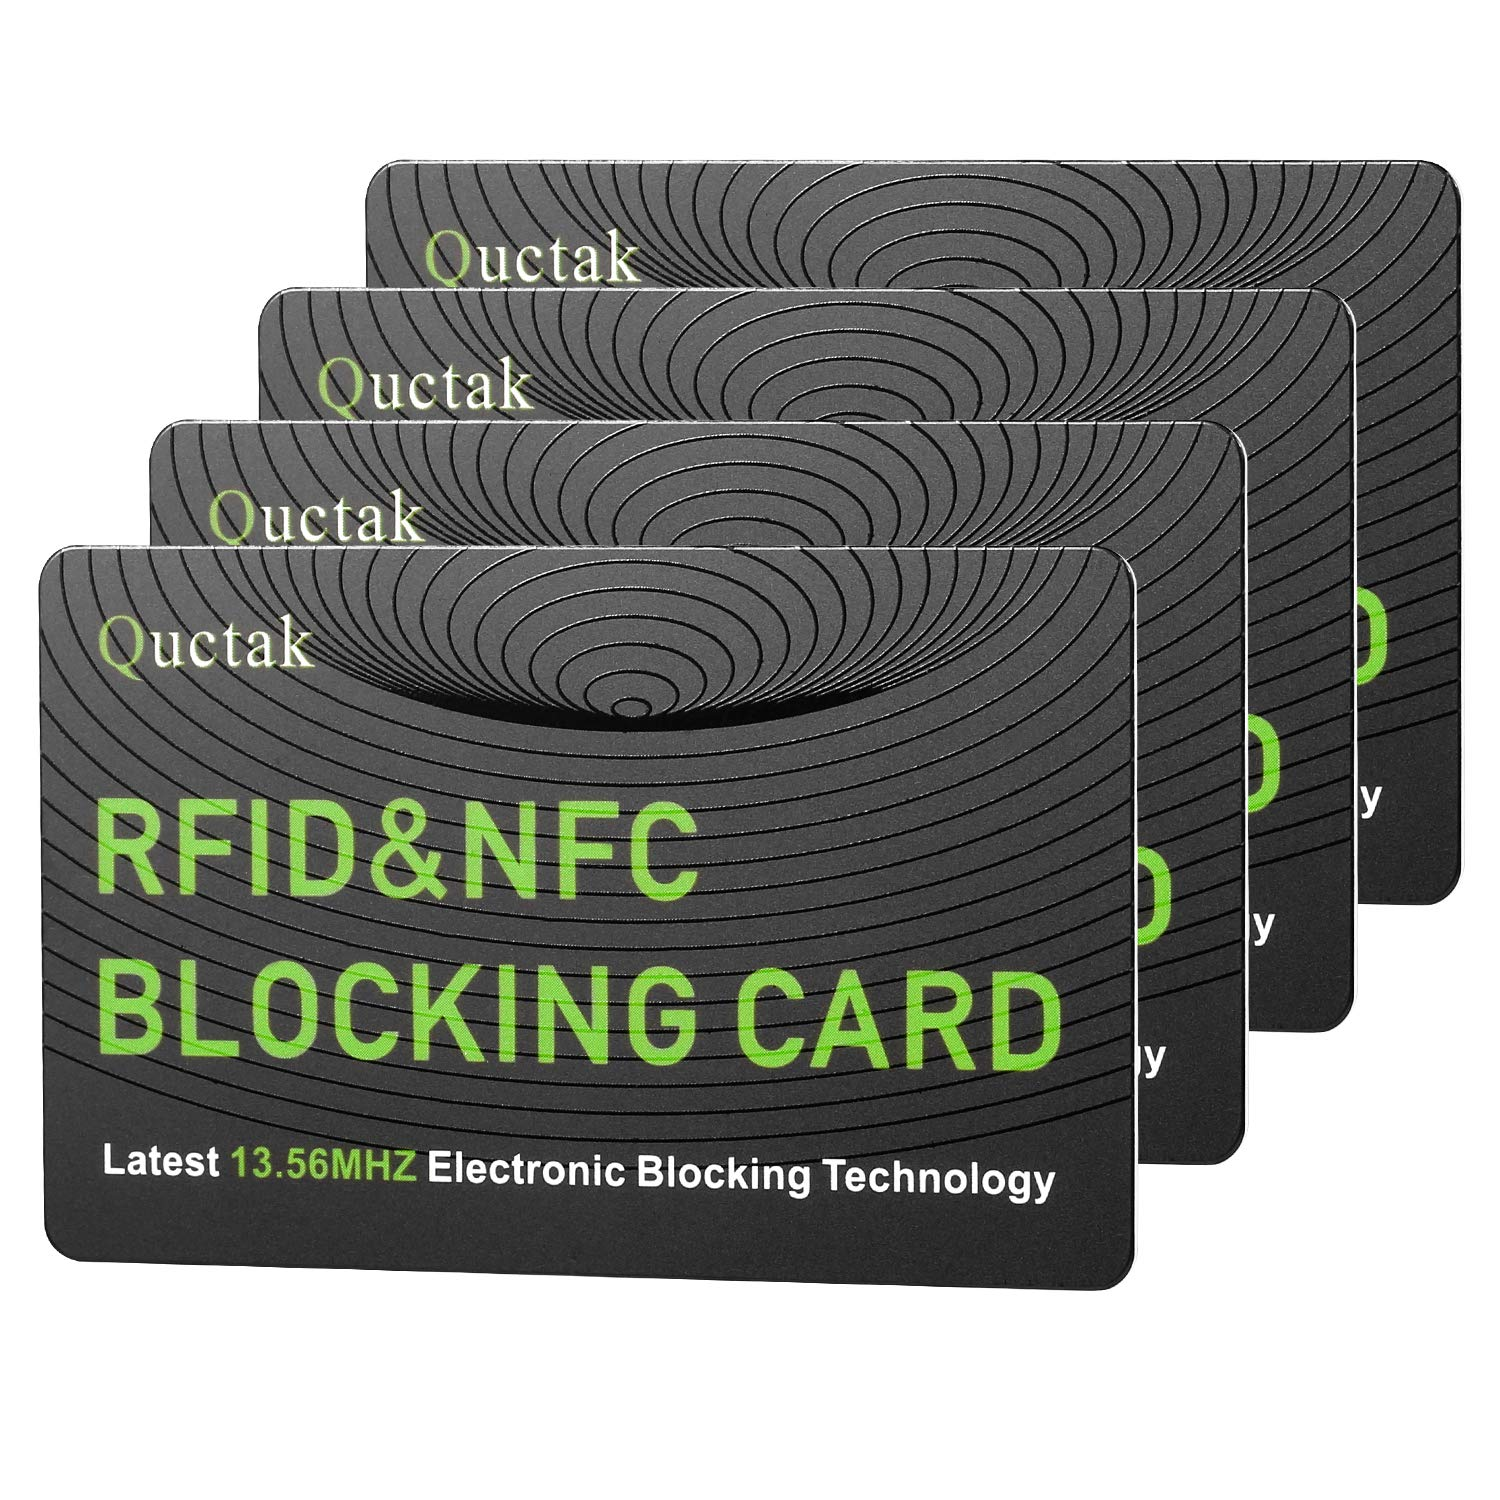 RFID Blocking Card, NFC Contactless Cards Protection Entire Wallet & Purse Shield, No More Need for Single Sleeves, Credit Card Holder, Wallets or Passport (Green) by Quctak